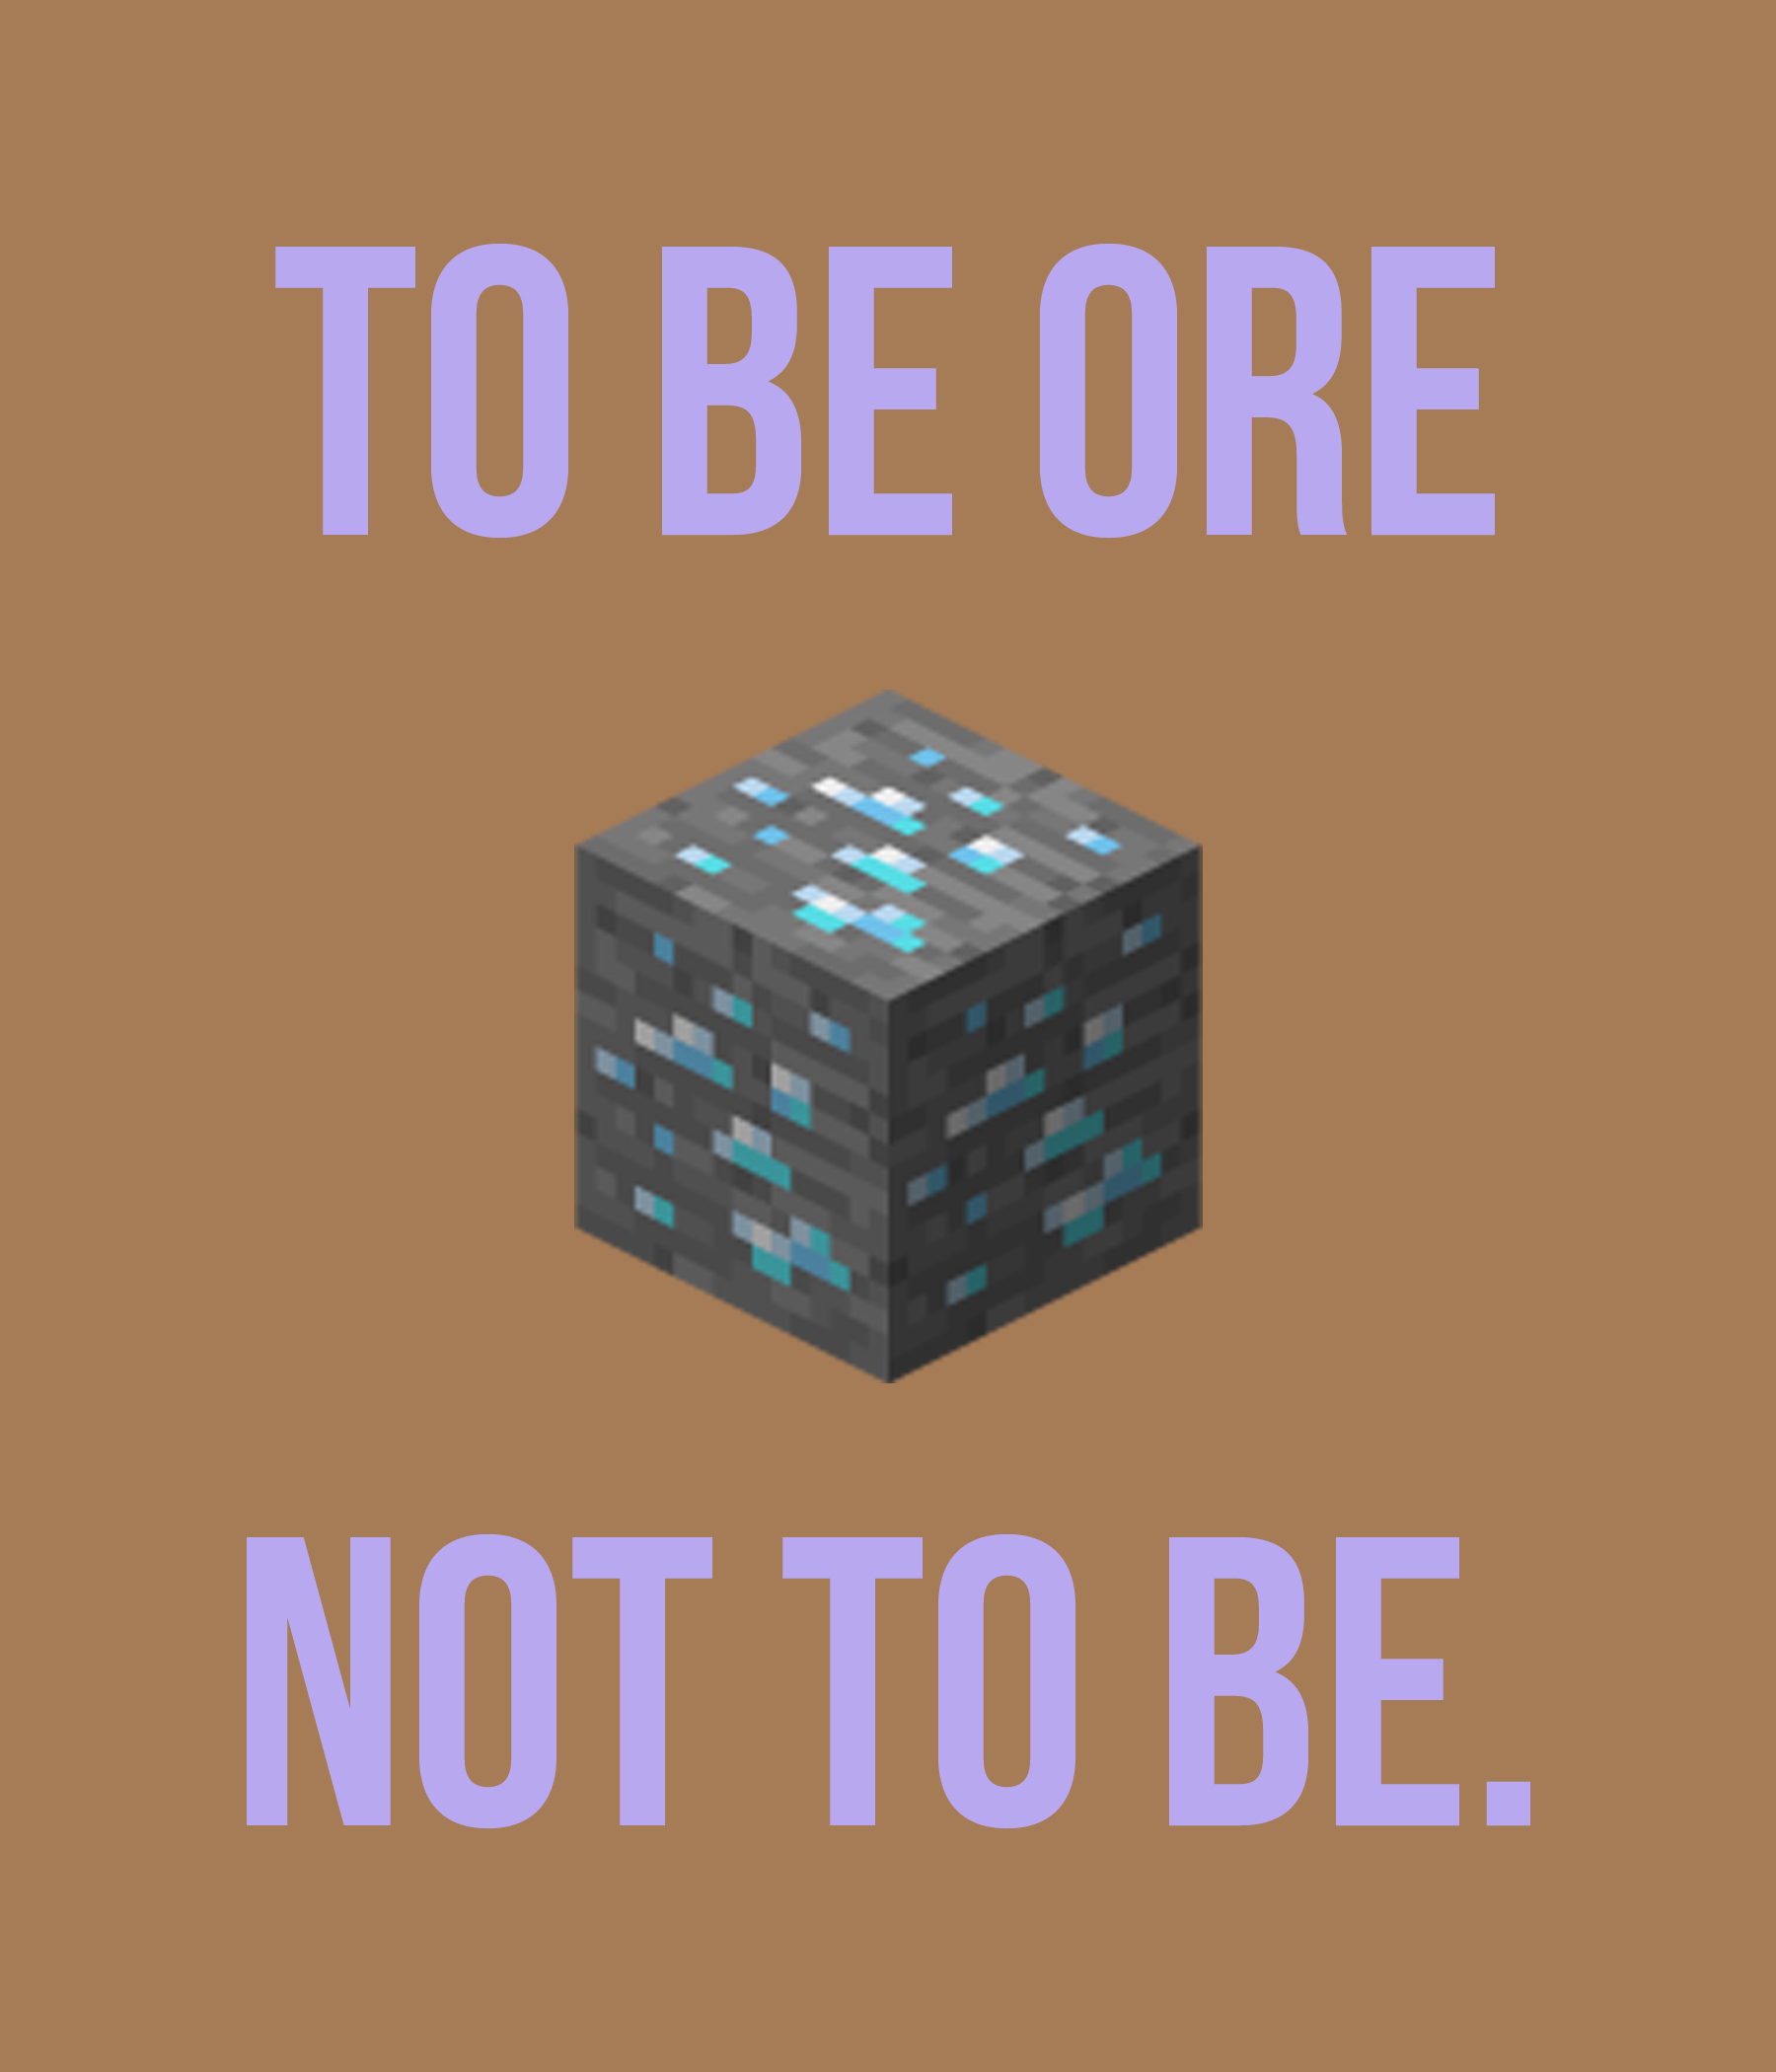 to be ore not to be minecraft shirt